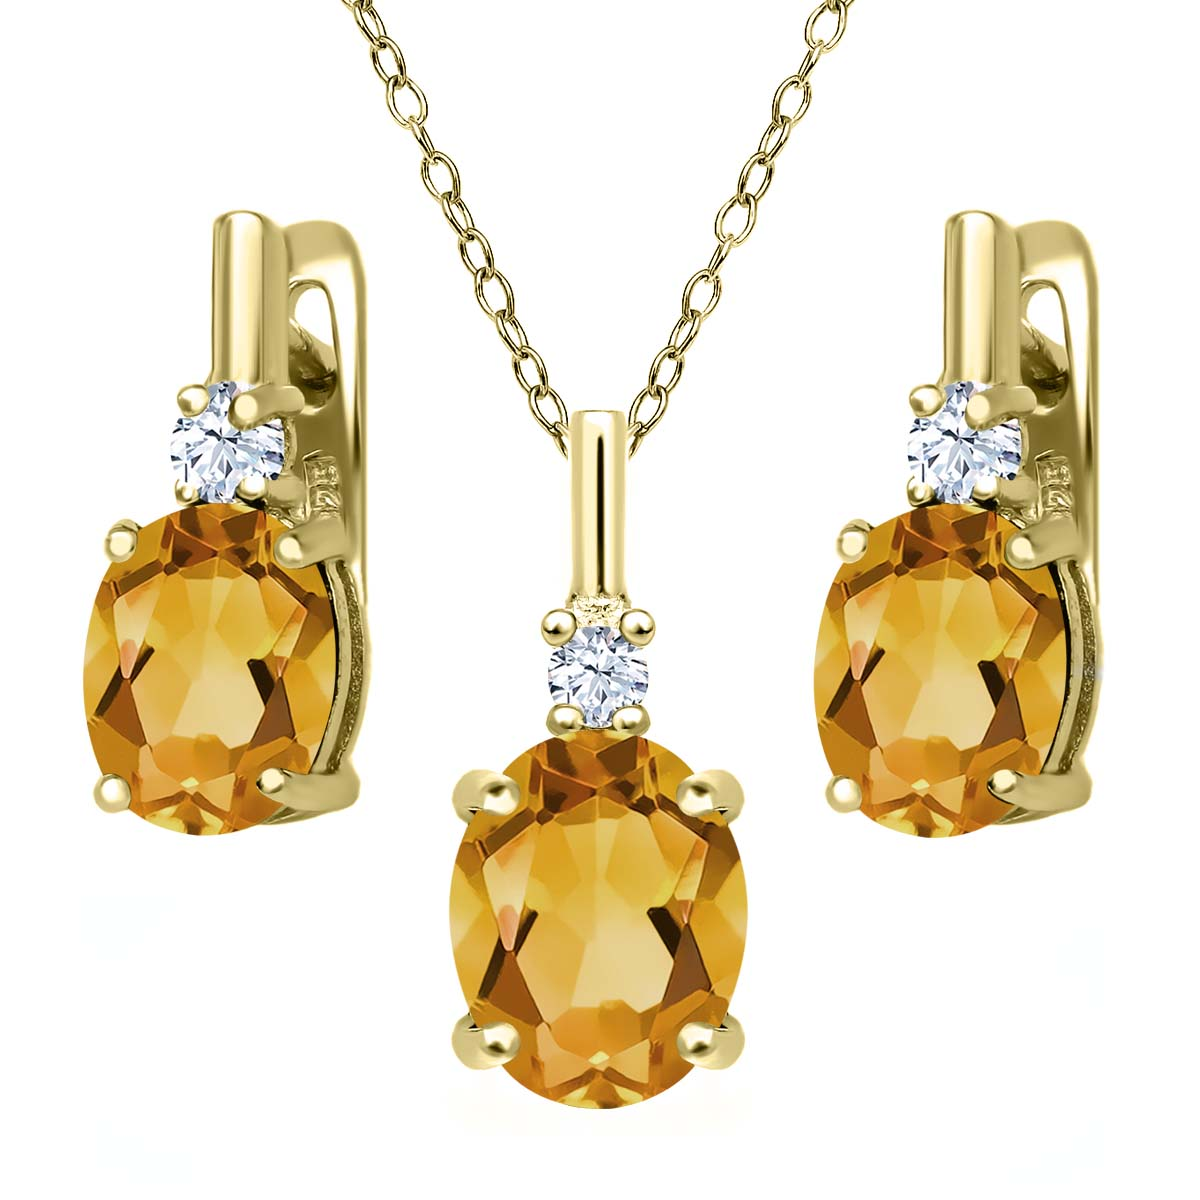 3.53 Ct Yellow Citrine White Topaz 18K Yellow Gold Plated Silver Pendant Earrings Set by